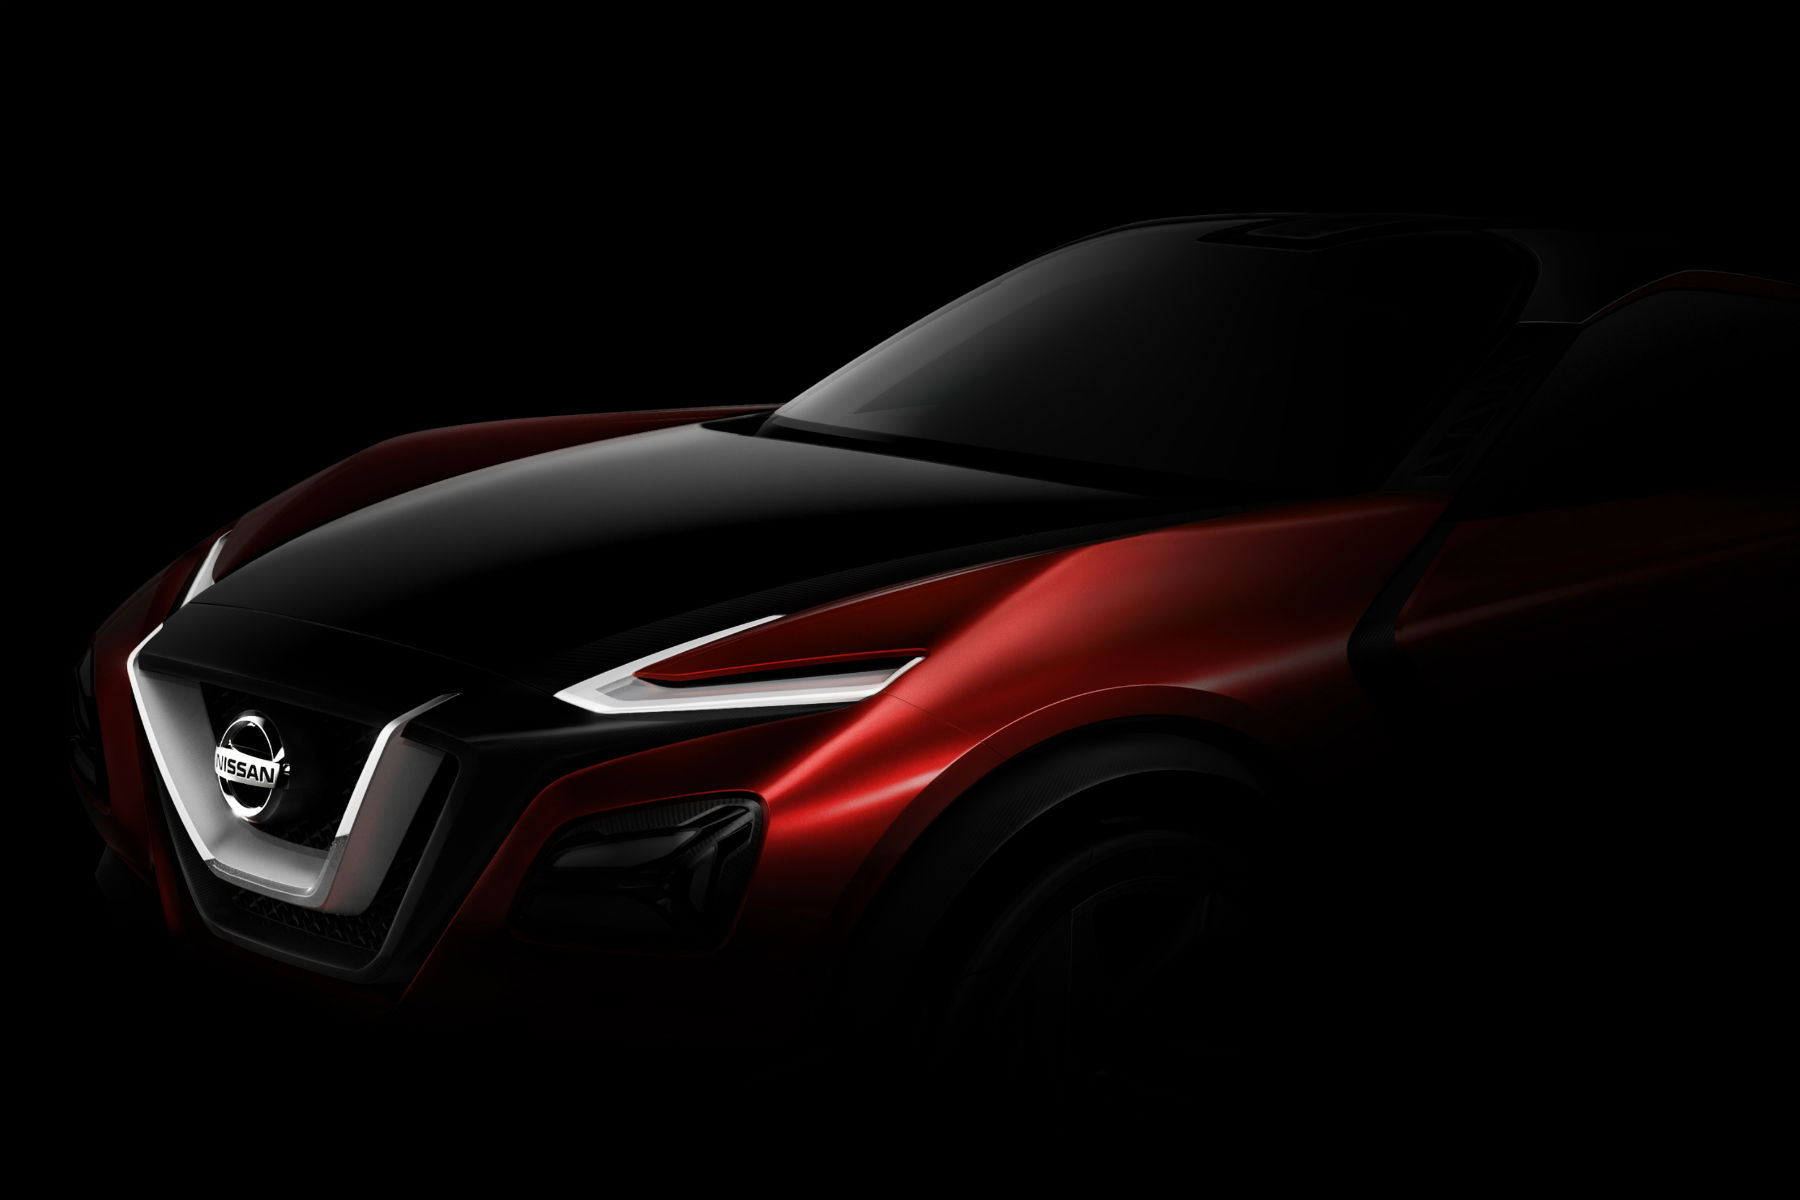 Nissan teases new crossover concept ahead of Frankfurt debut